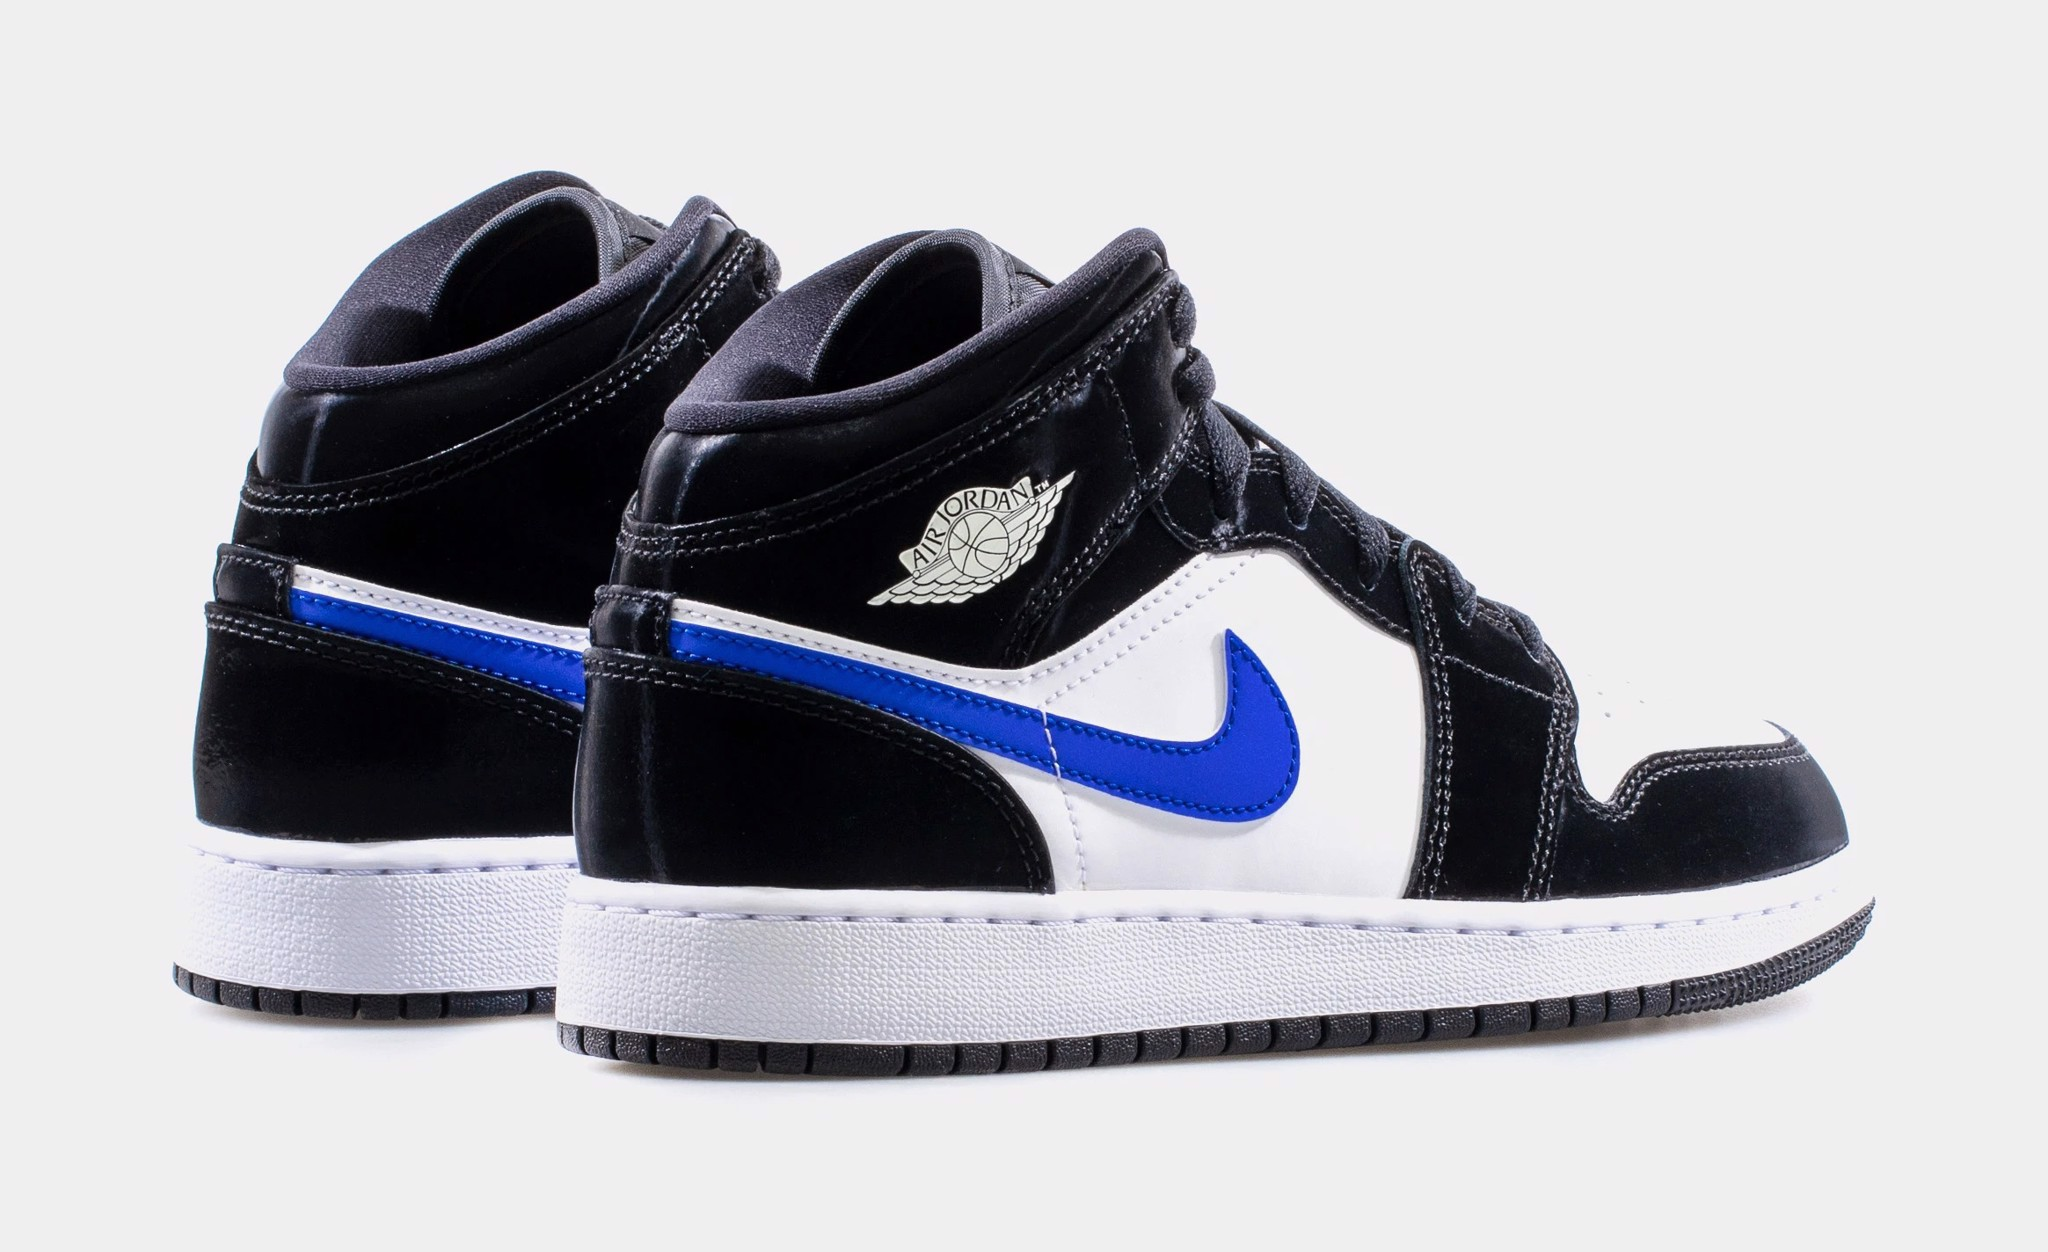 Nike Air Jordan 1 Mid Black Racer Blue White (GS) 554725-084